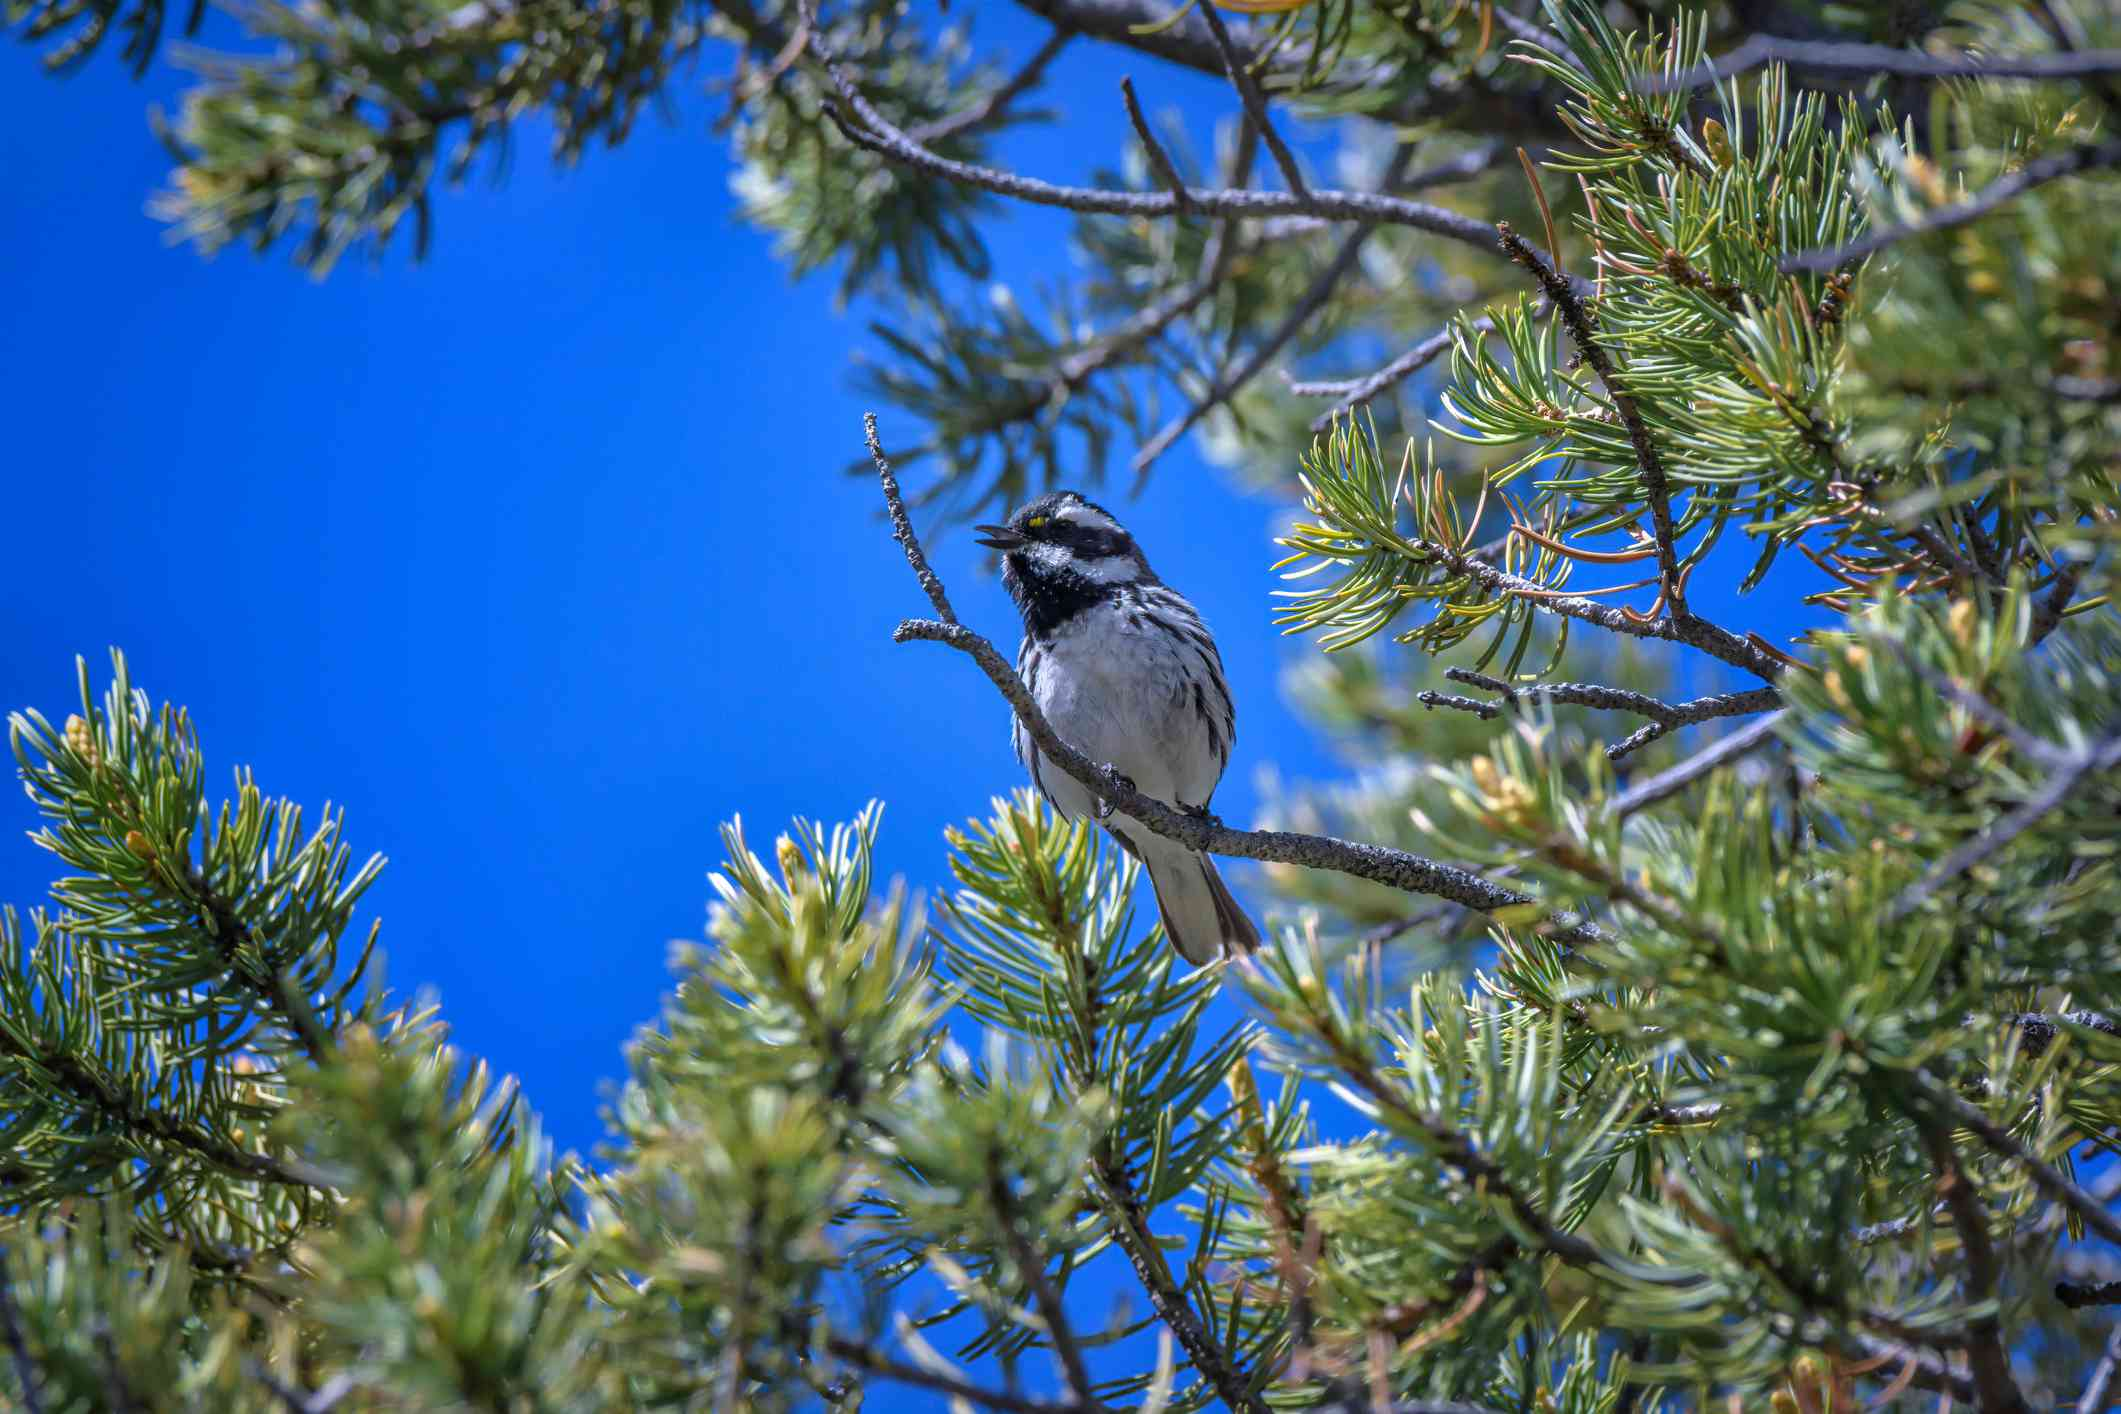 Black-throated Gray Warbler in pine tree in Santa Fe, New Mexico